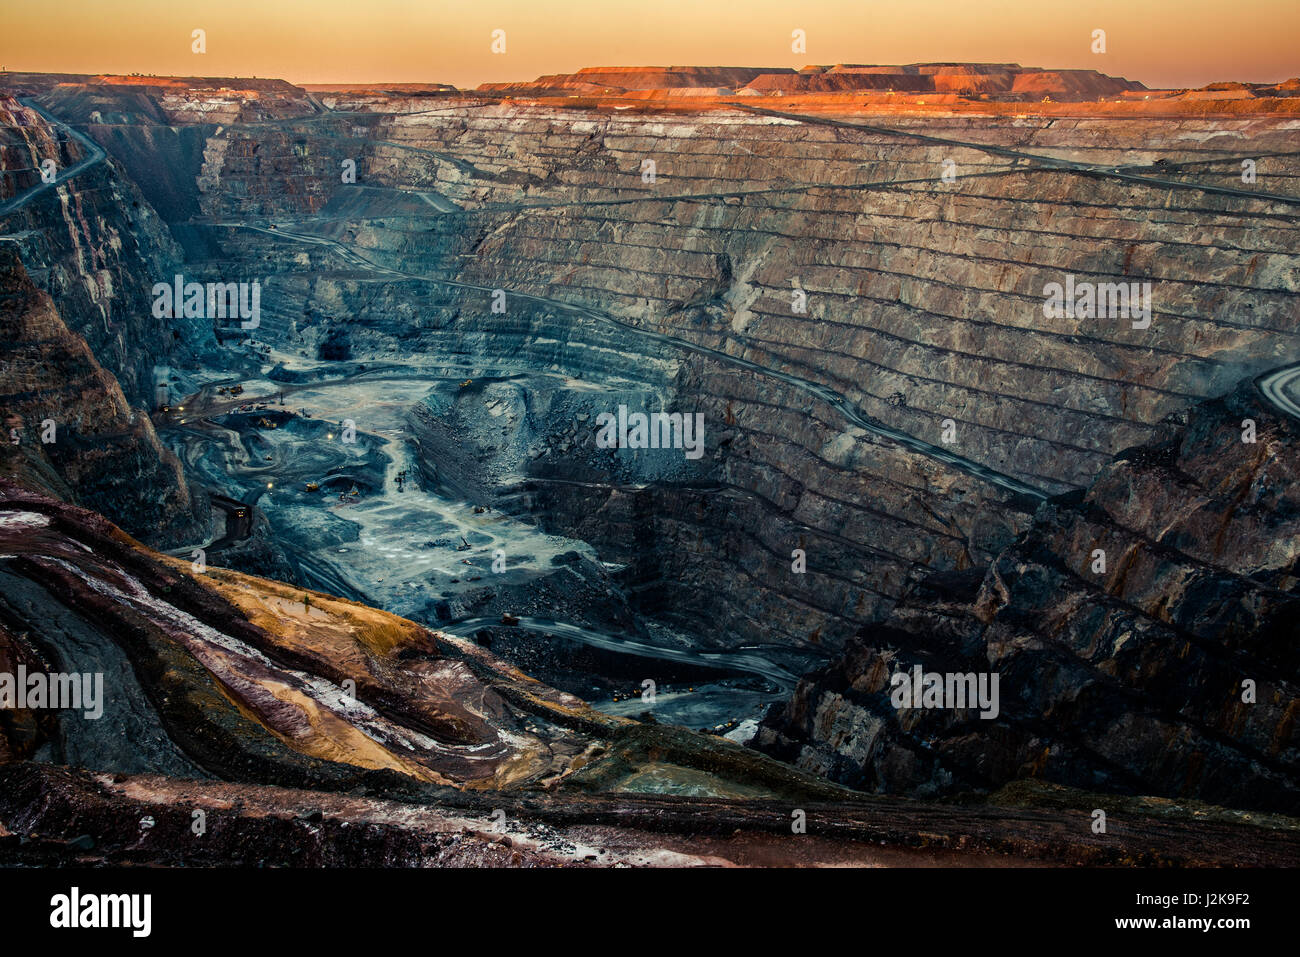 Kalgoorlie with its Super Pit gold mine is of the most the most successful towns in the Australian Outback. - Stock Image